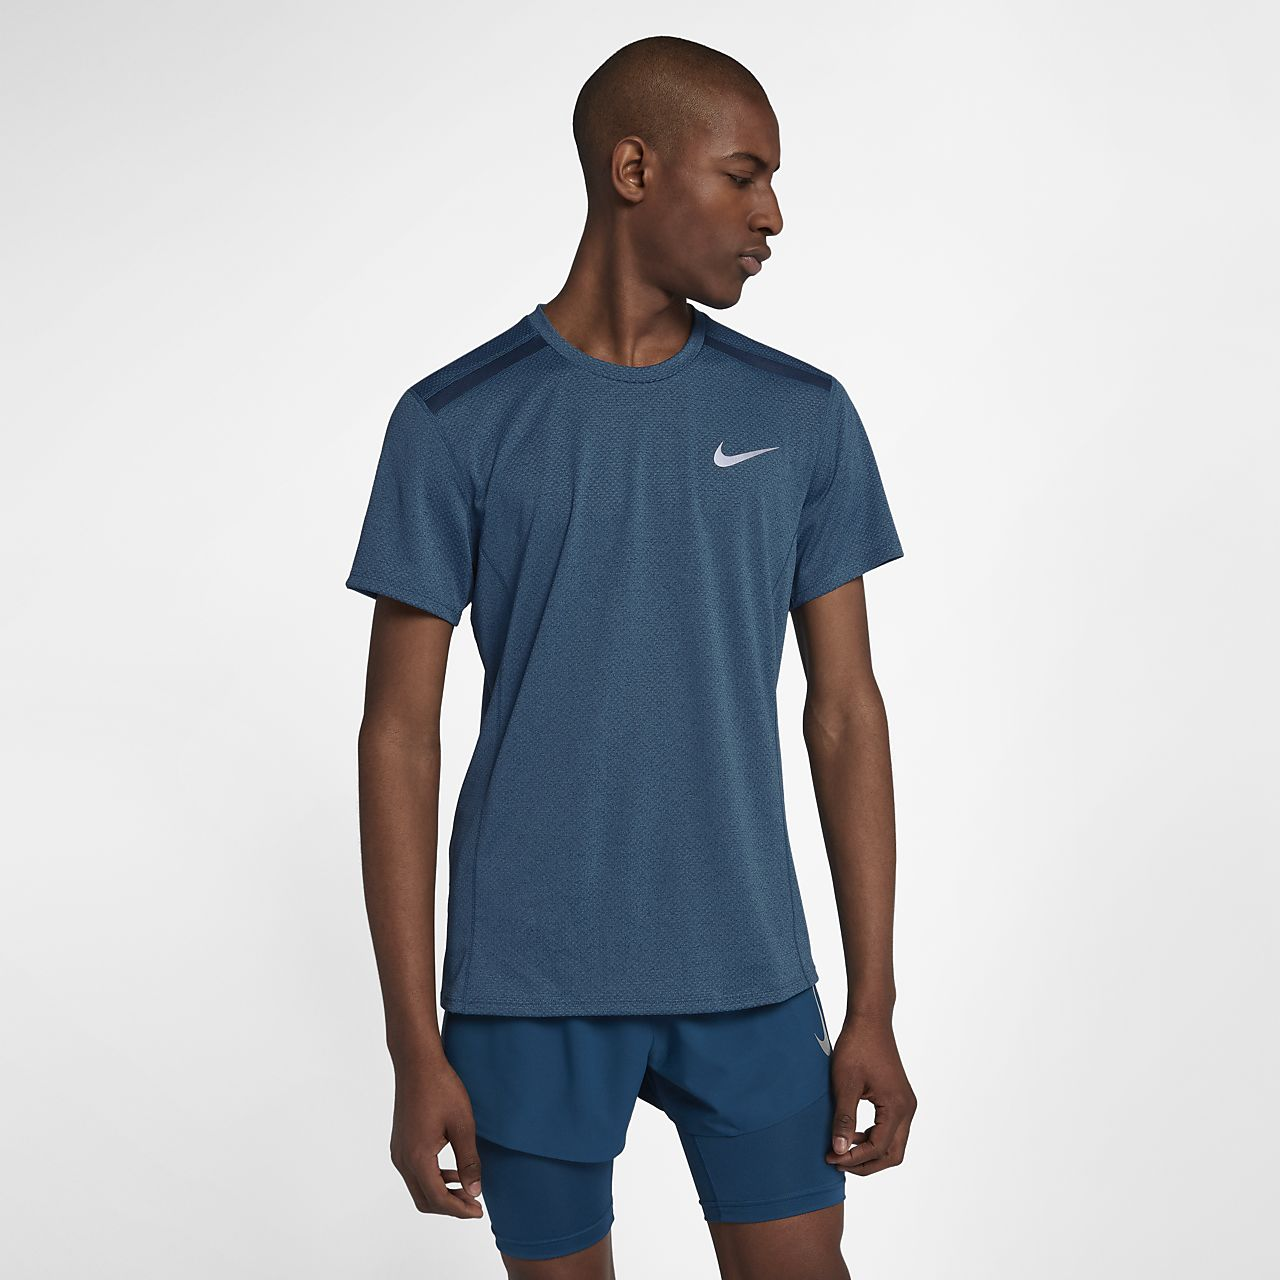 Nike Running T Shirt Medium To Suit The PeopleS Convenience Clothing, Shoes & Accessories Activewear